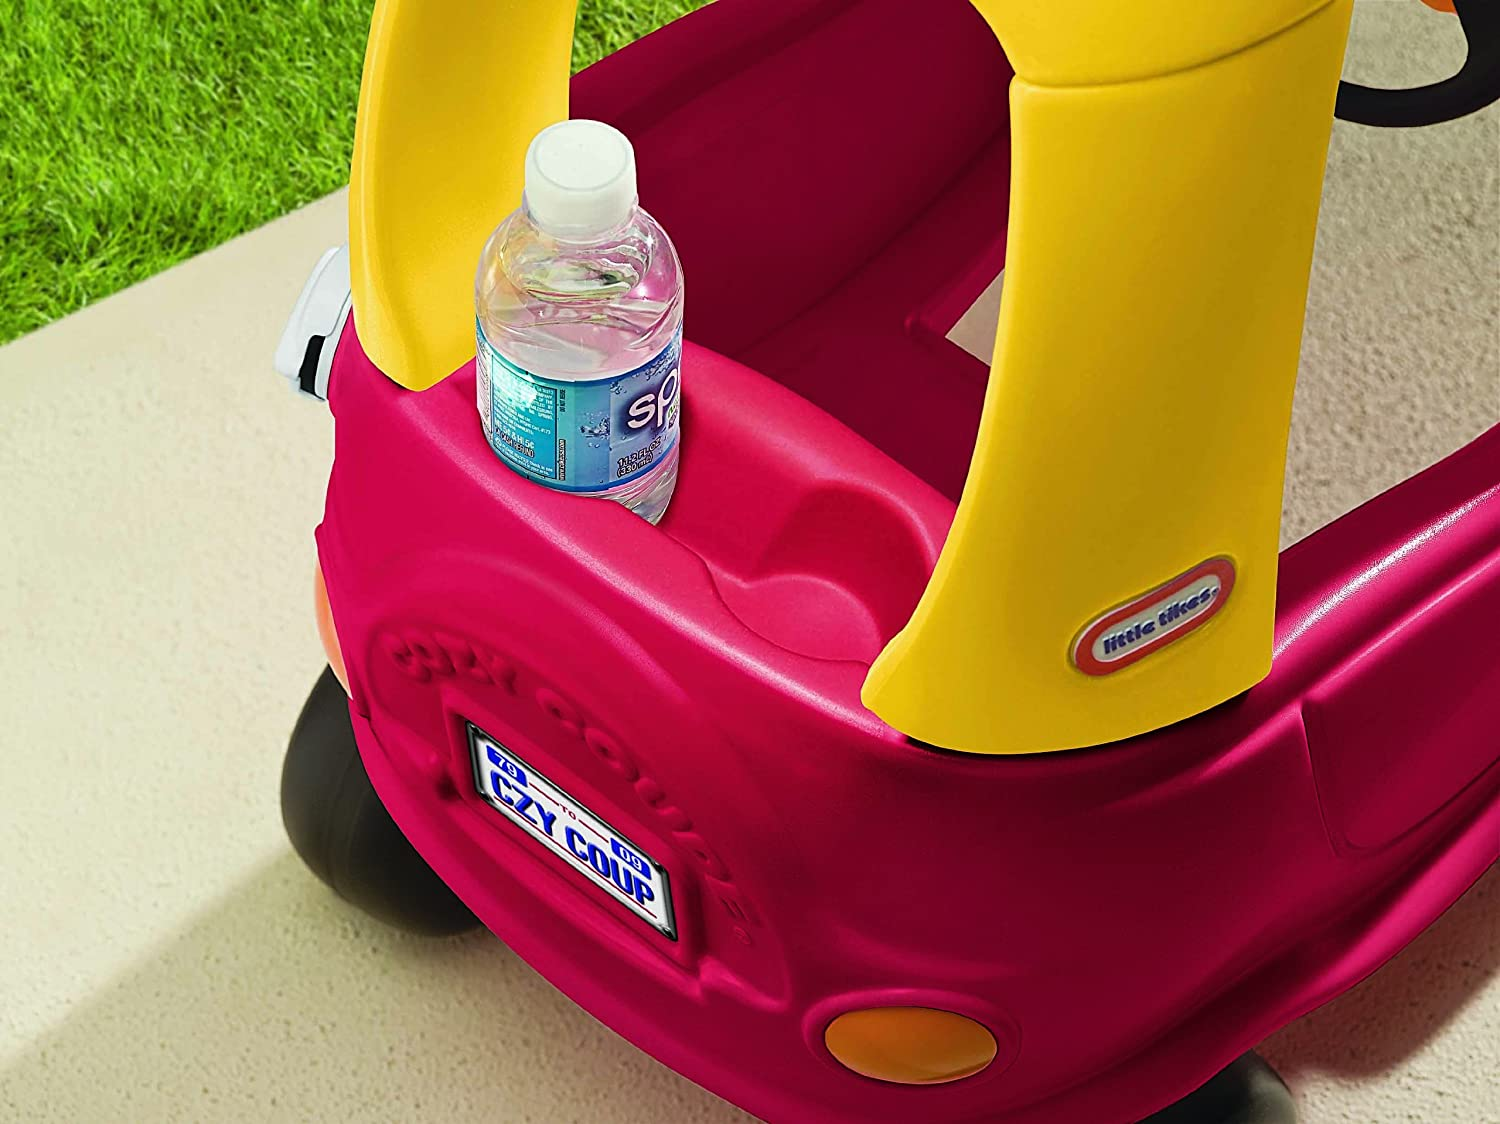 buy little tikes cozy coupe anniversary edition online at low prices in india amazonin